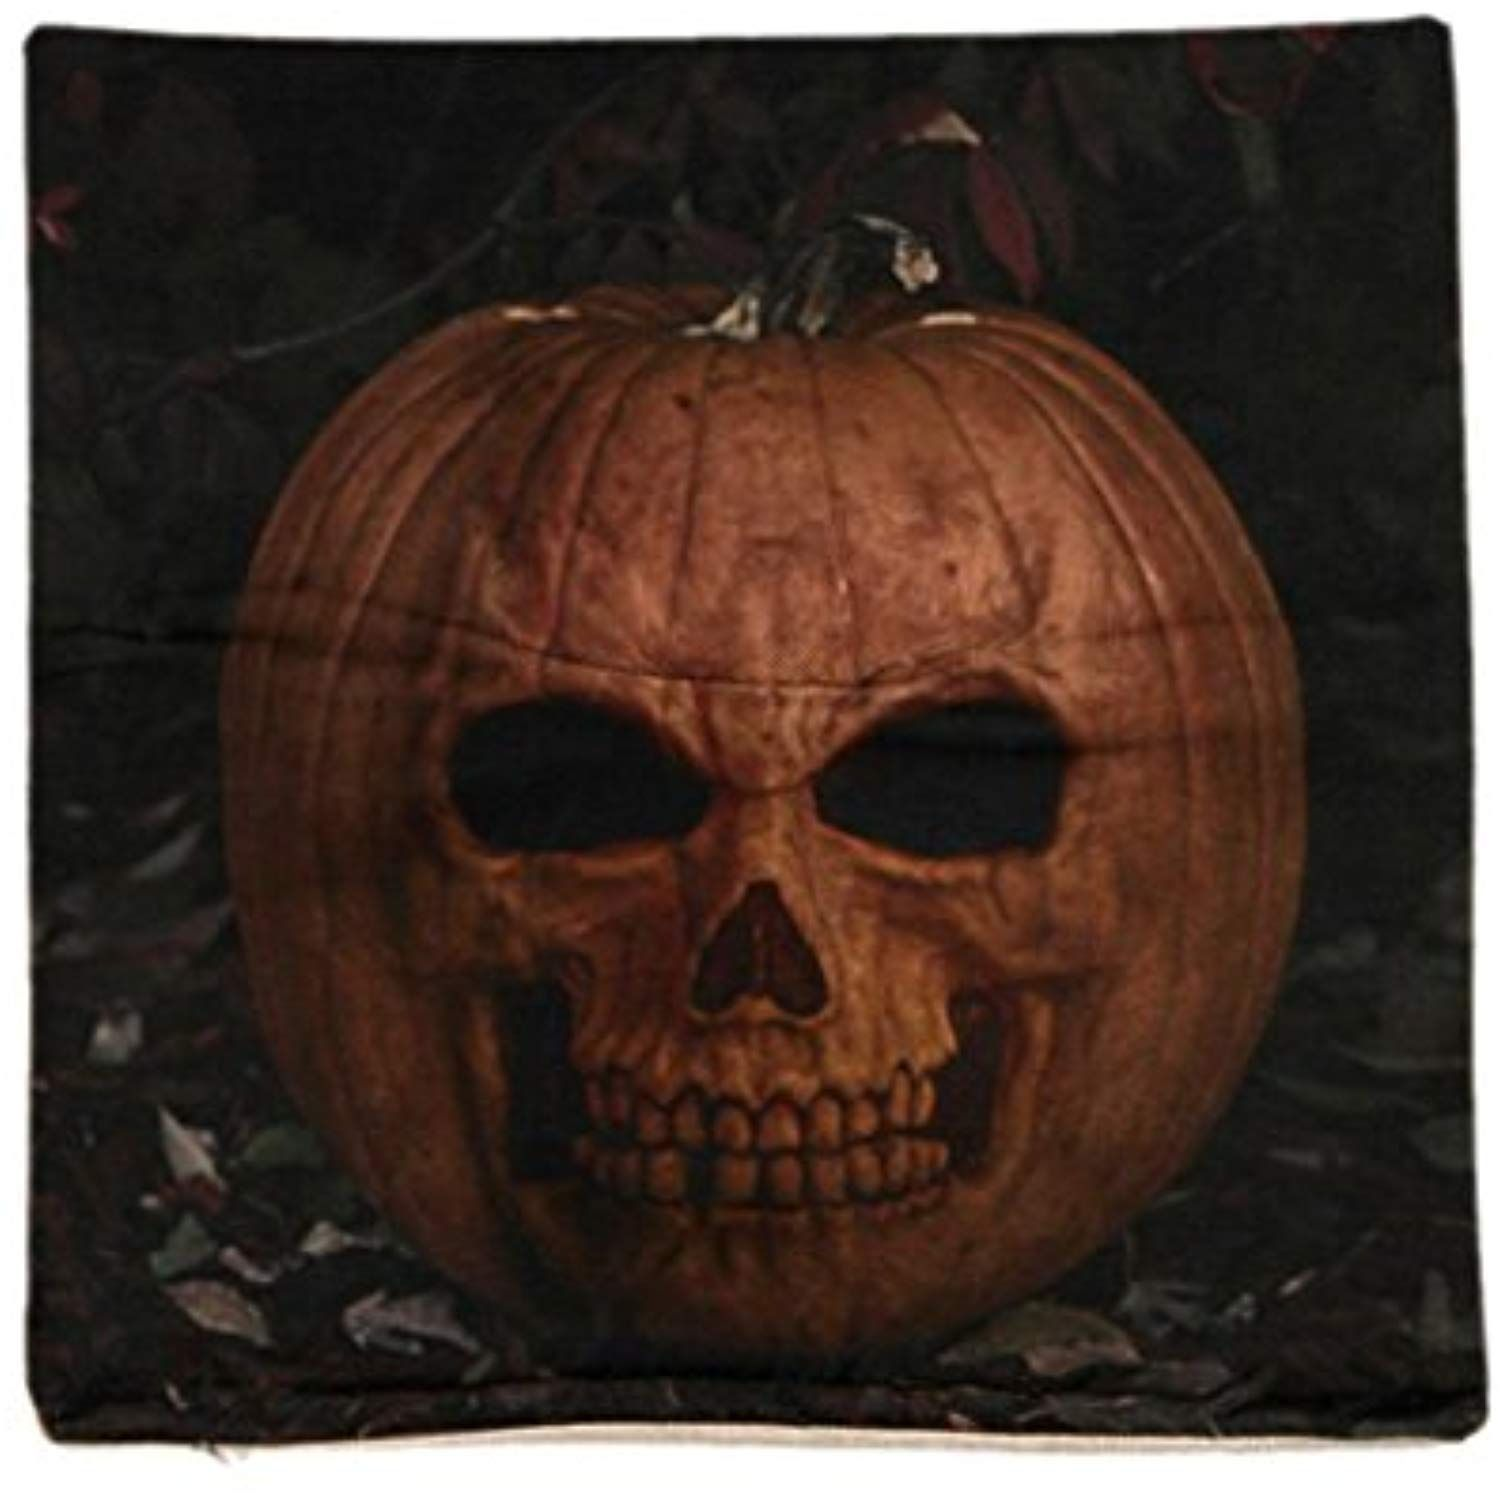 25 Clearance Halloween Decorations Save Big On Halloween Costumes